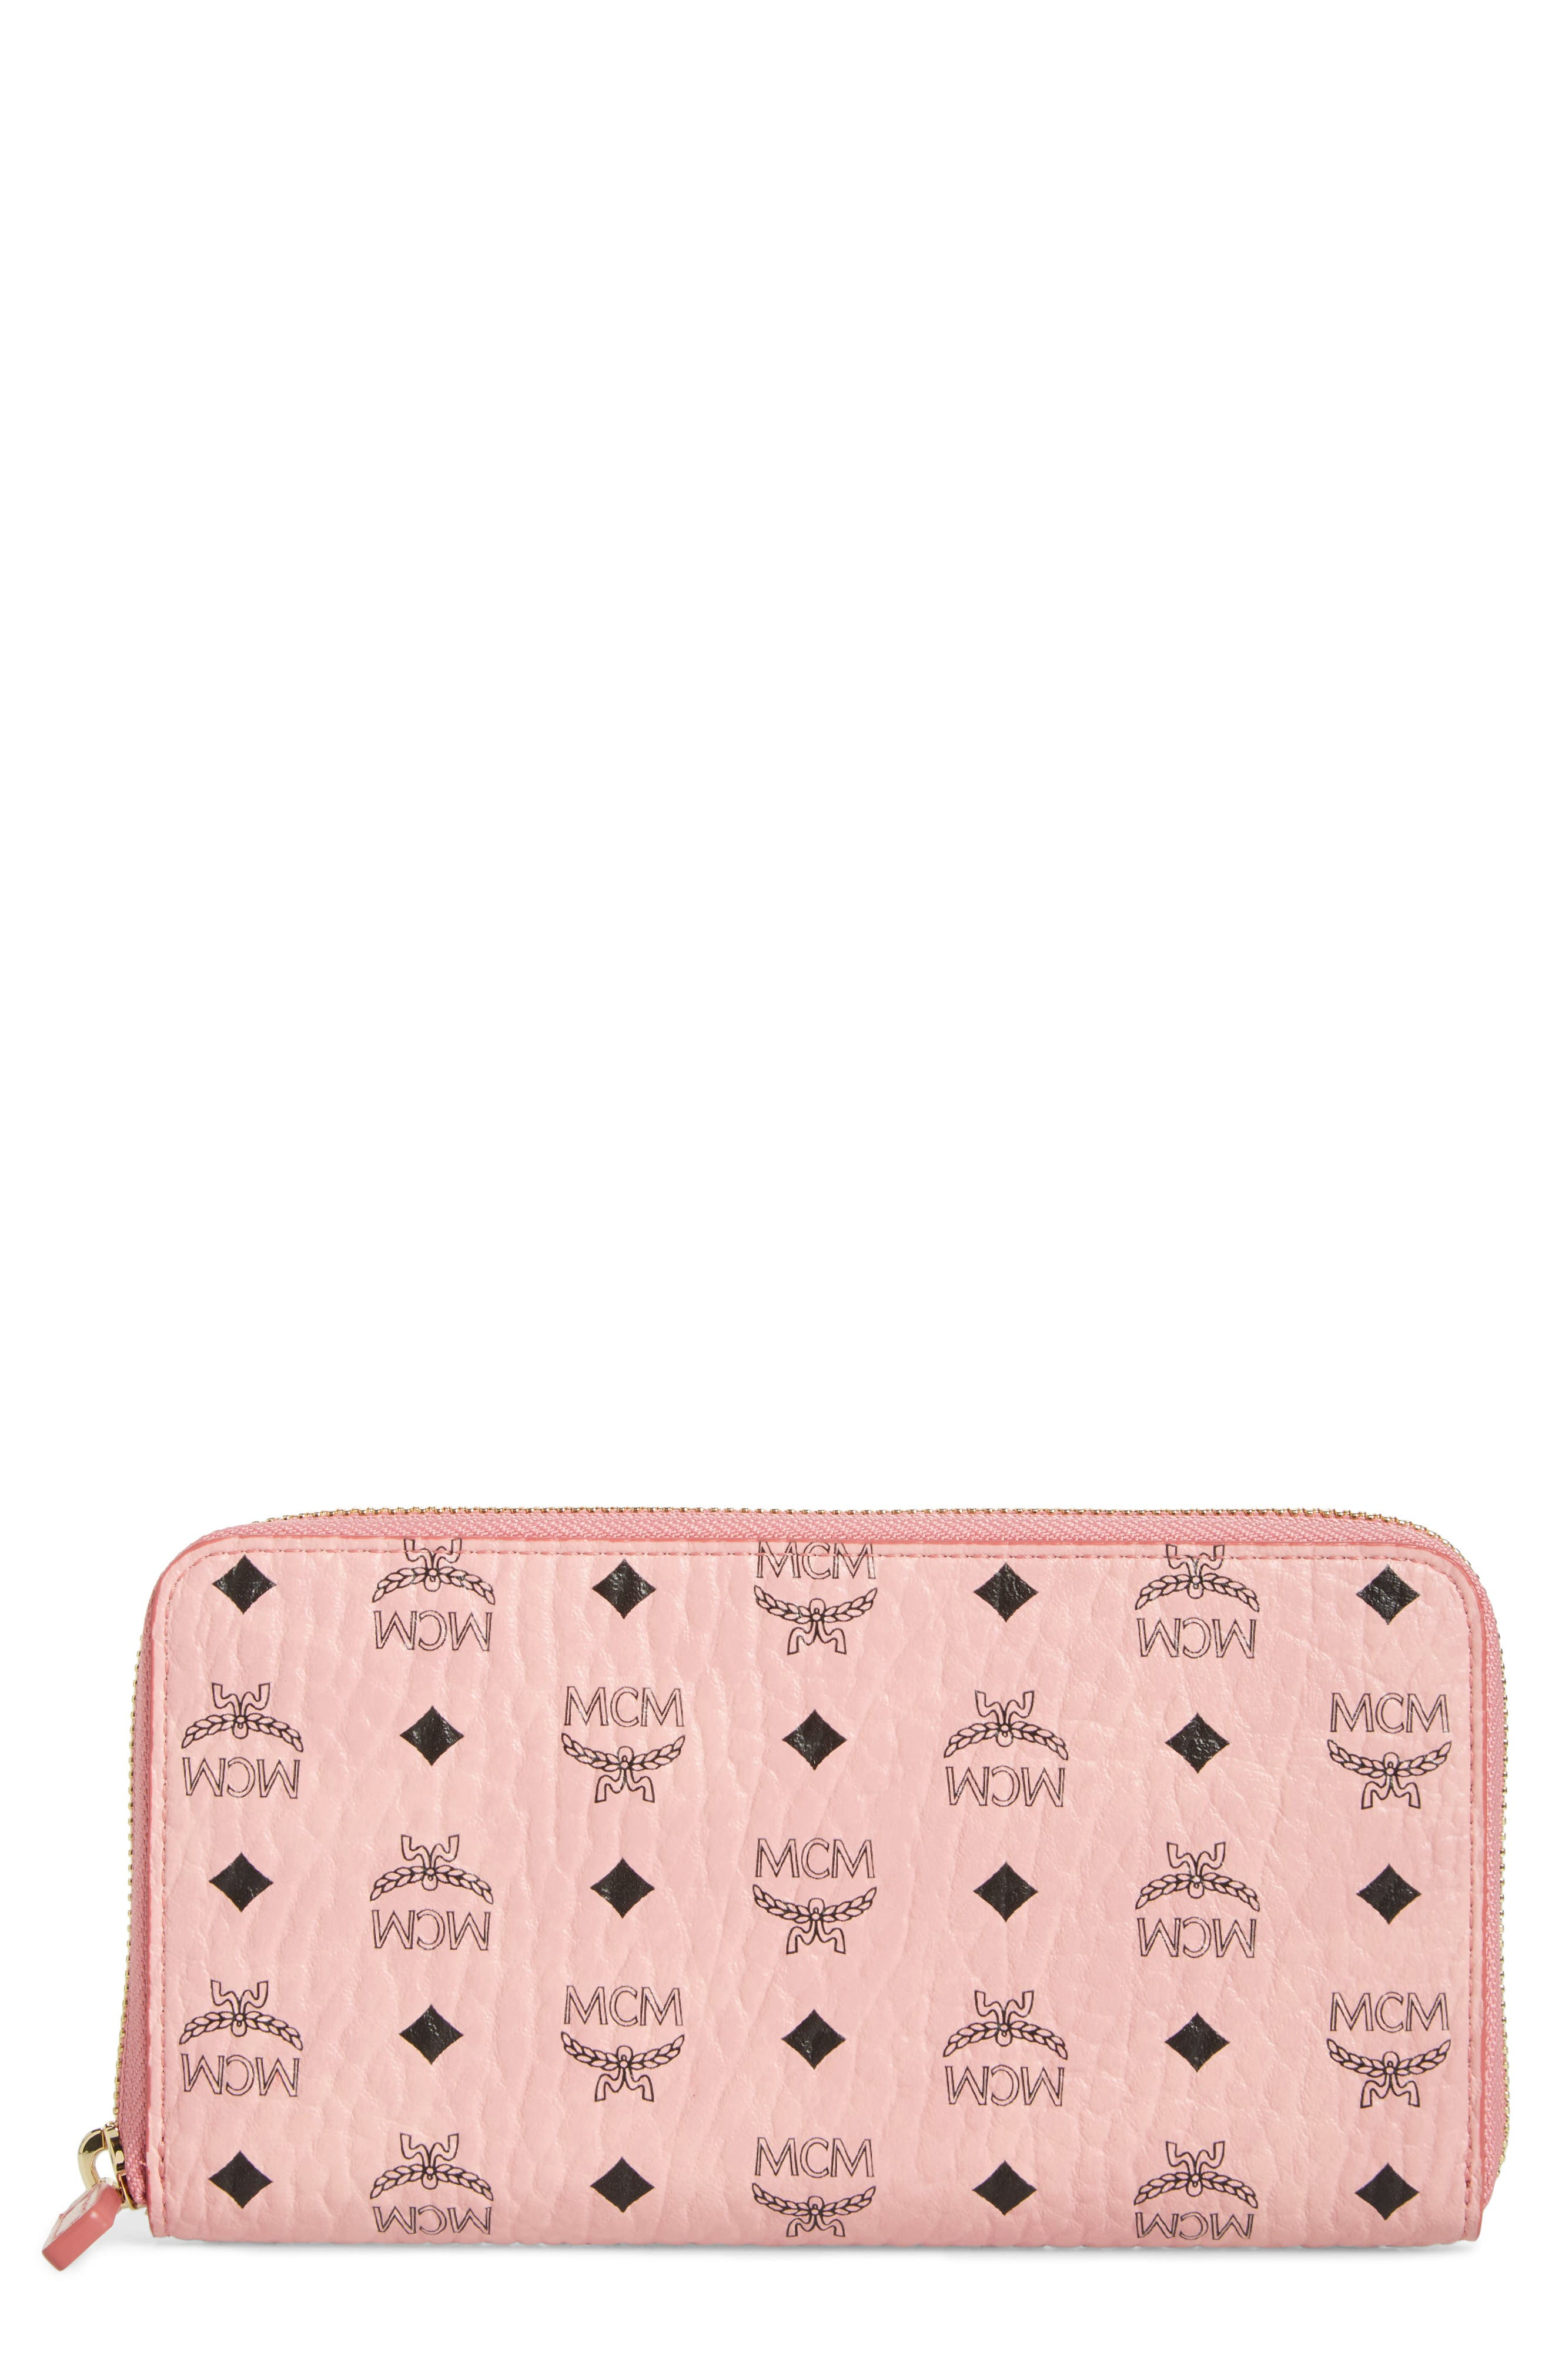 MCM Visetos Coated Canvas Zip Wallet